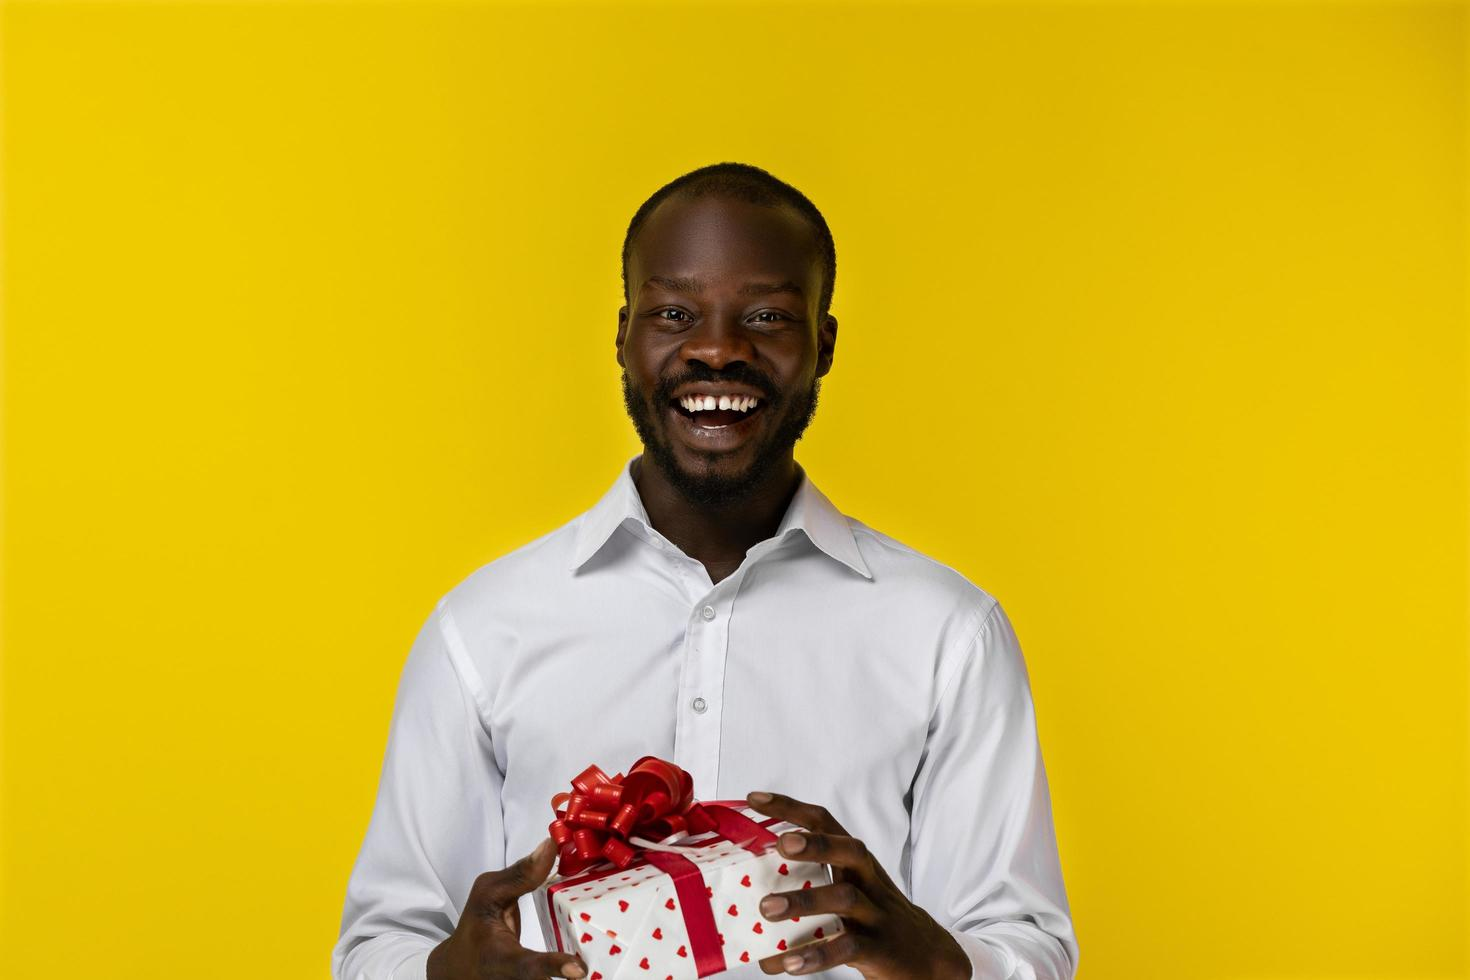 Excited man holding a gift photo